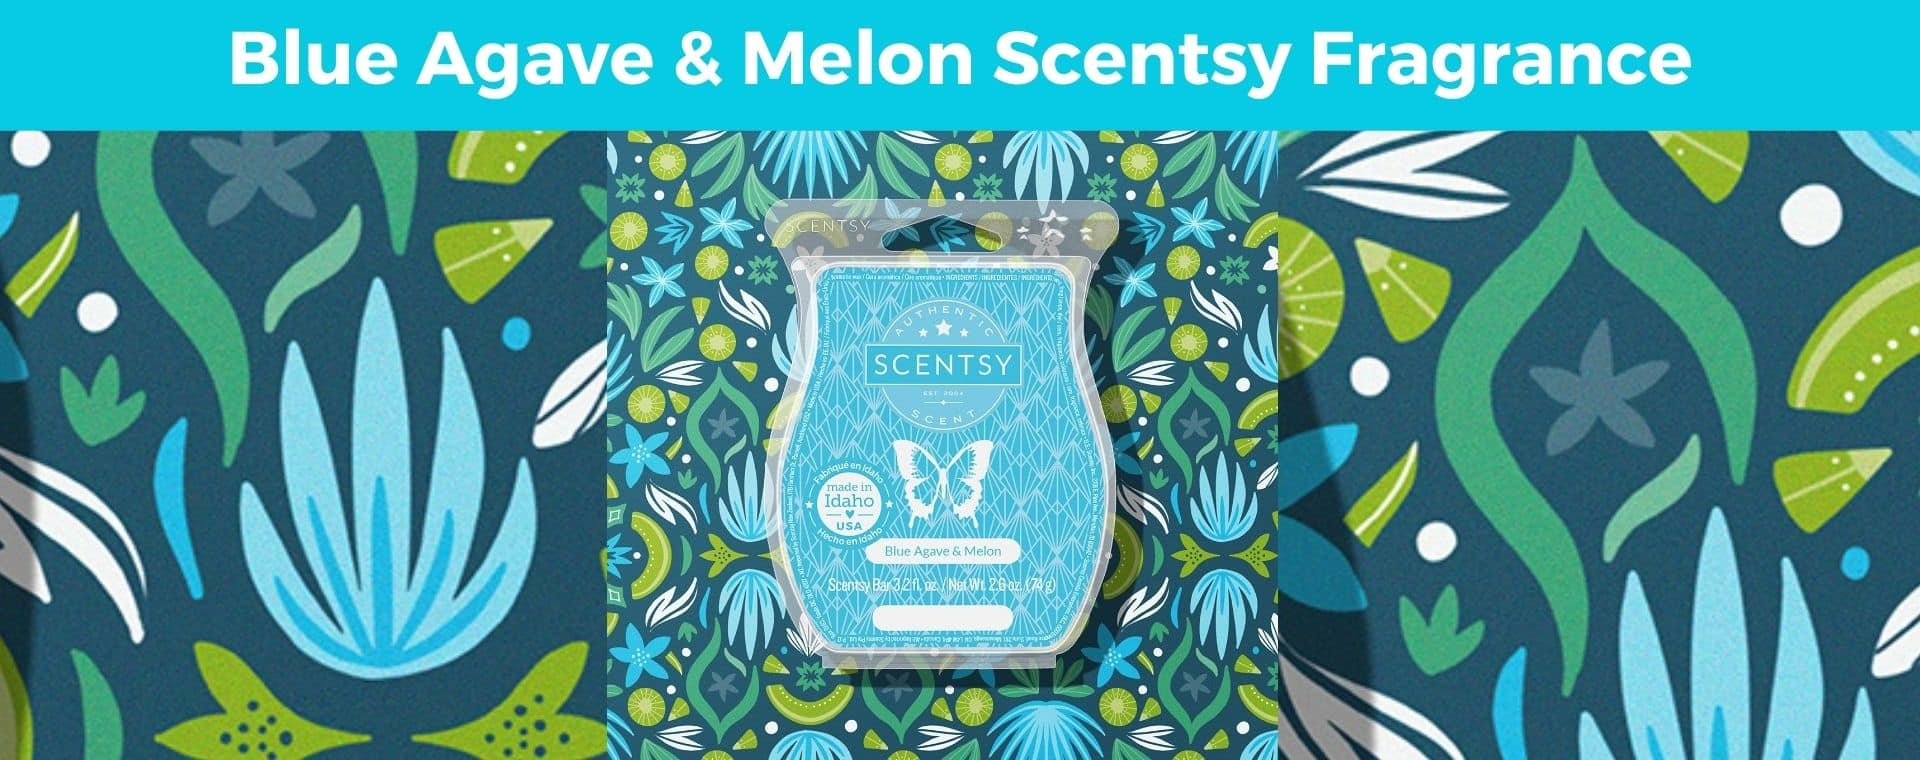 Blue Agave Melon Scentsy Fragrance